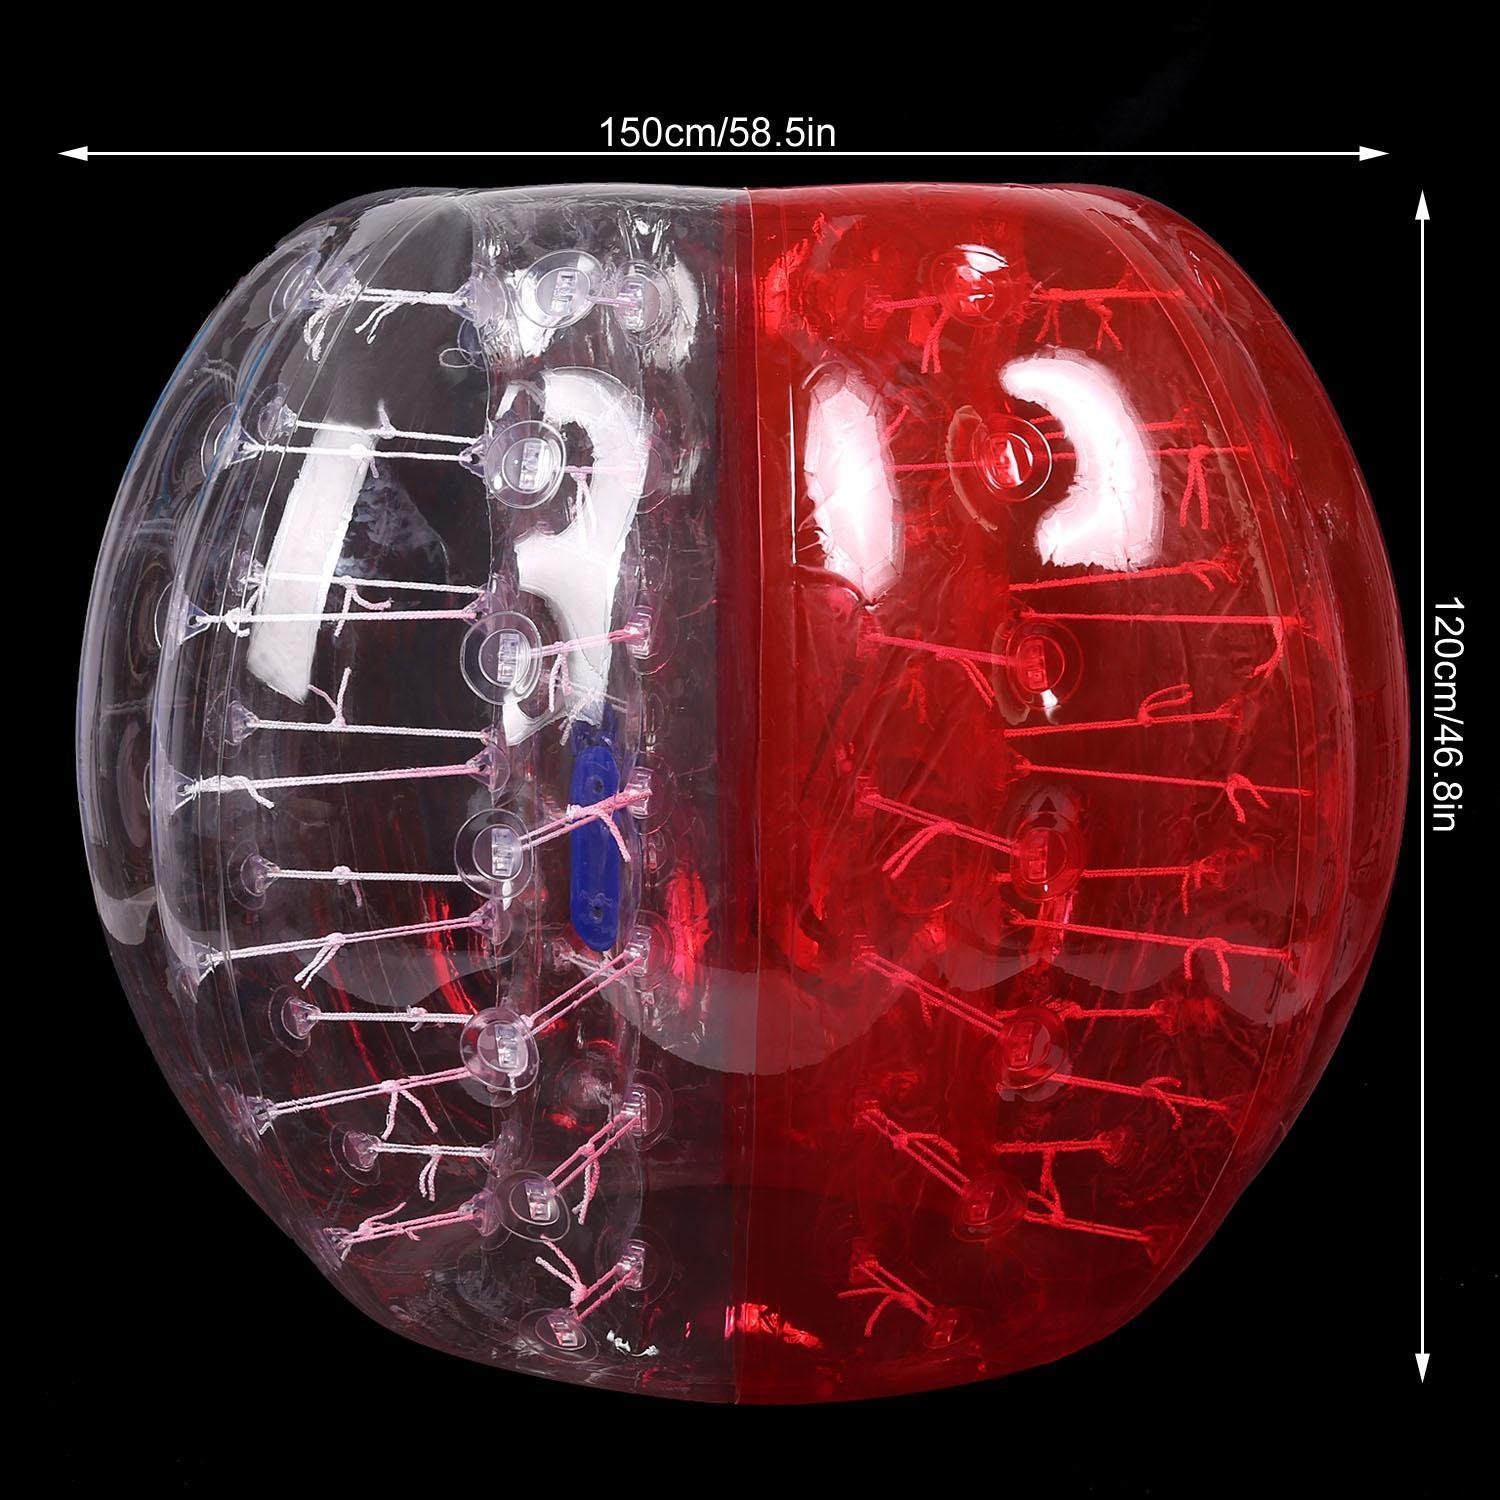 Mewalker Giant Inflatable Bumper Ball 0.8MM TPU Bubble Soccer Ball Zorb Ball Human Hamster Ball With 2 Handles 2 Adjustable Shoulder for Children Kids Adults Playground Outdoor (1.2M-1.5M,US STOCK) by Mewalker (Image #3)